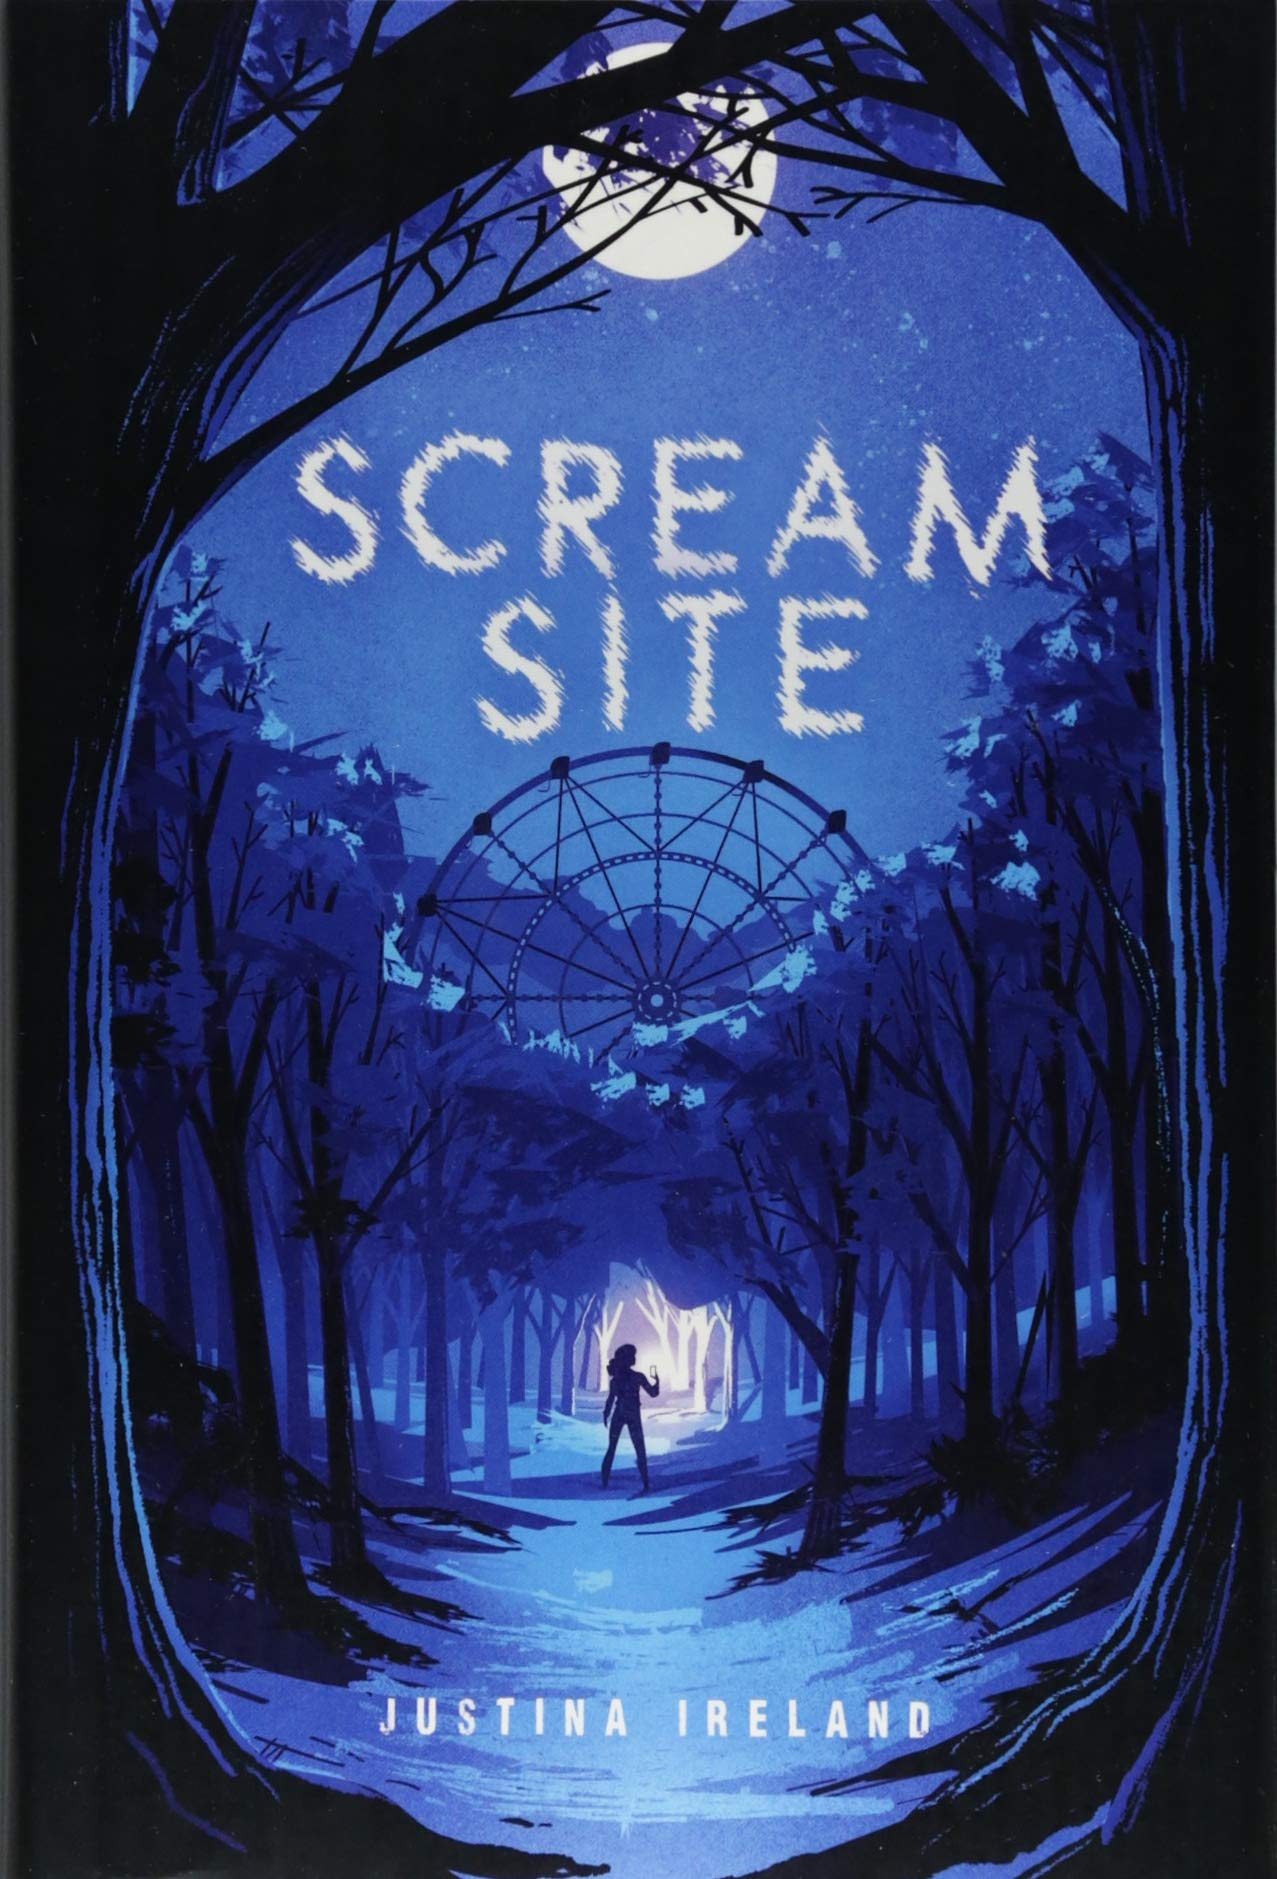 Scream Site - Sabrina Sebastian's goal in life is to be an investigative reporter. For her first big story, she researches a popular website called Scream Site, where people post scary videos and compete for the most